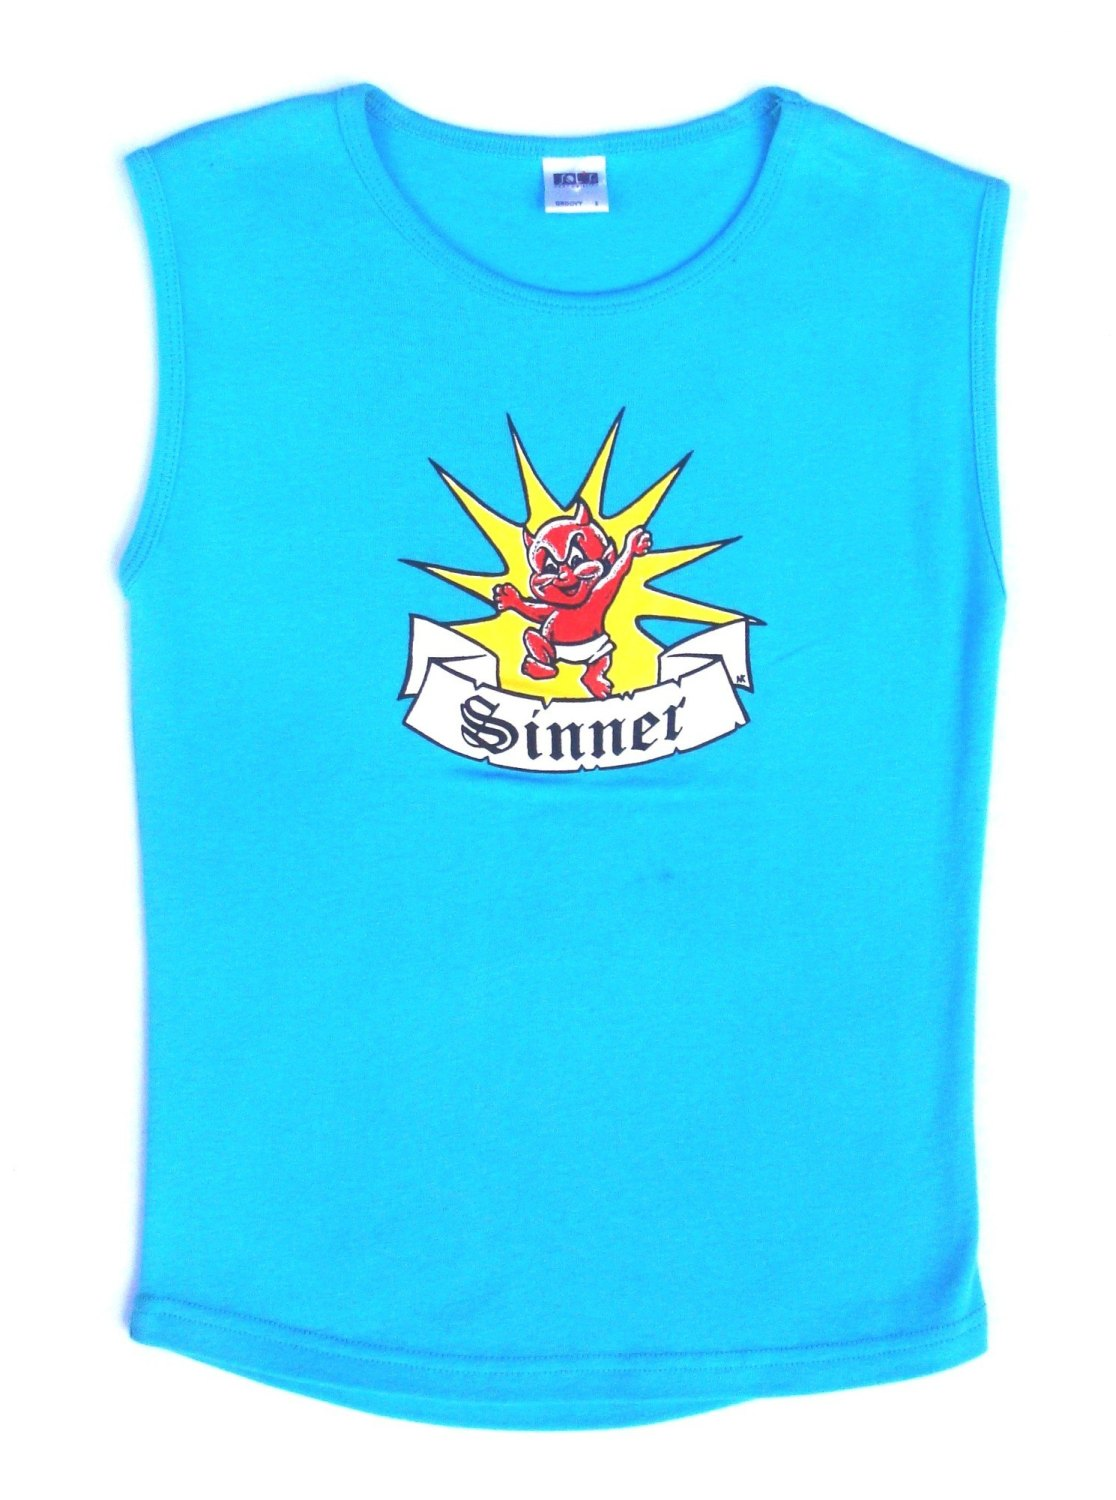 Rock N Roll Suicide Devilette Sinner Turquoise Sleeveless Top Small